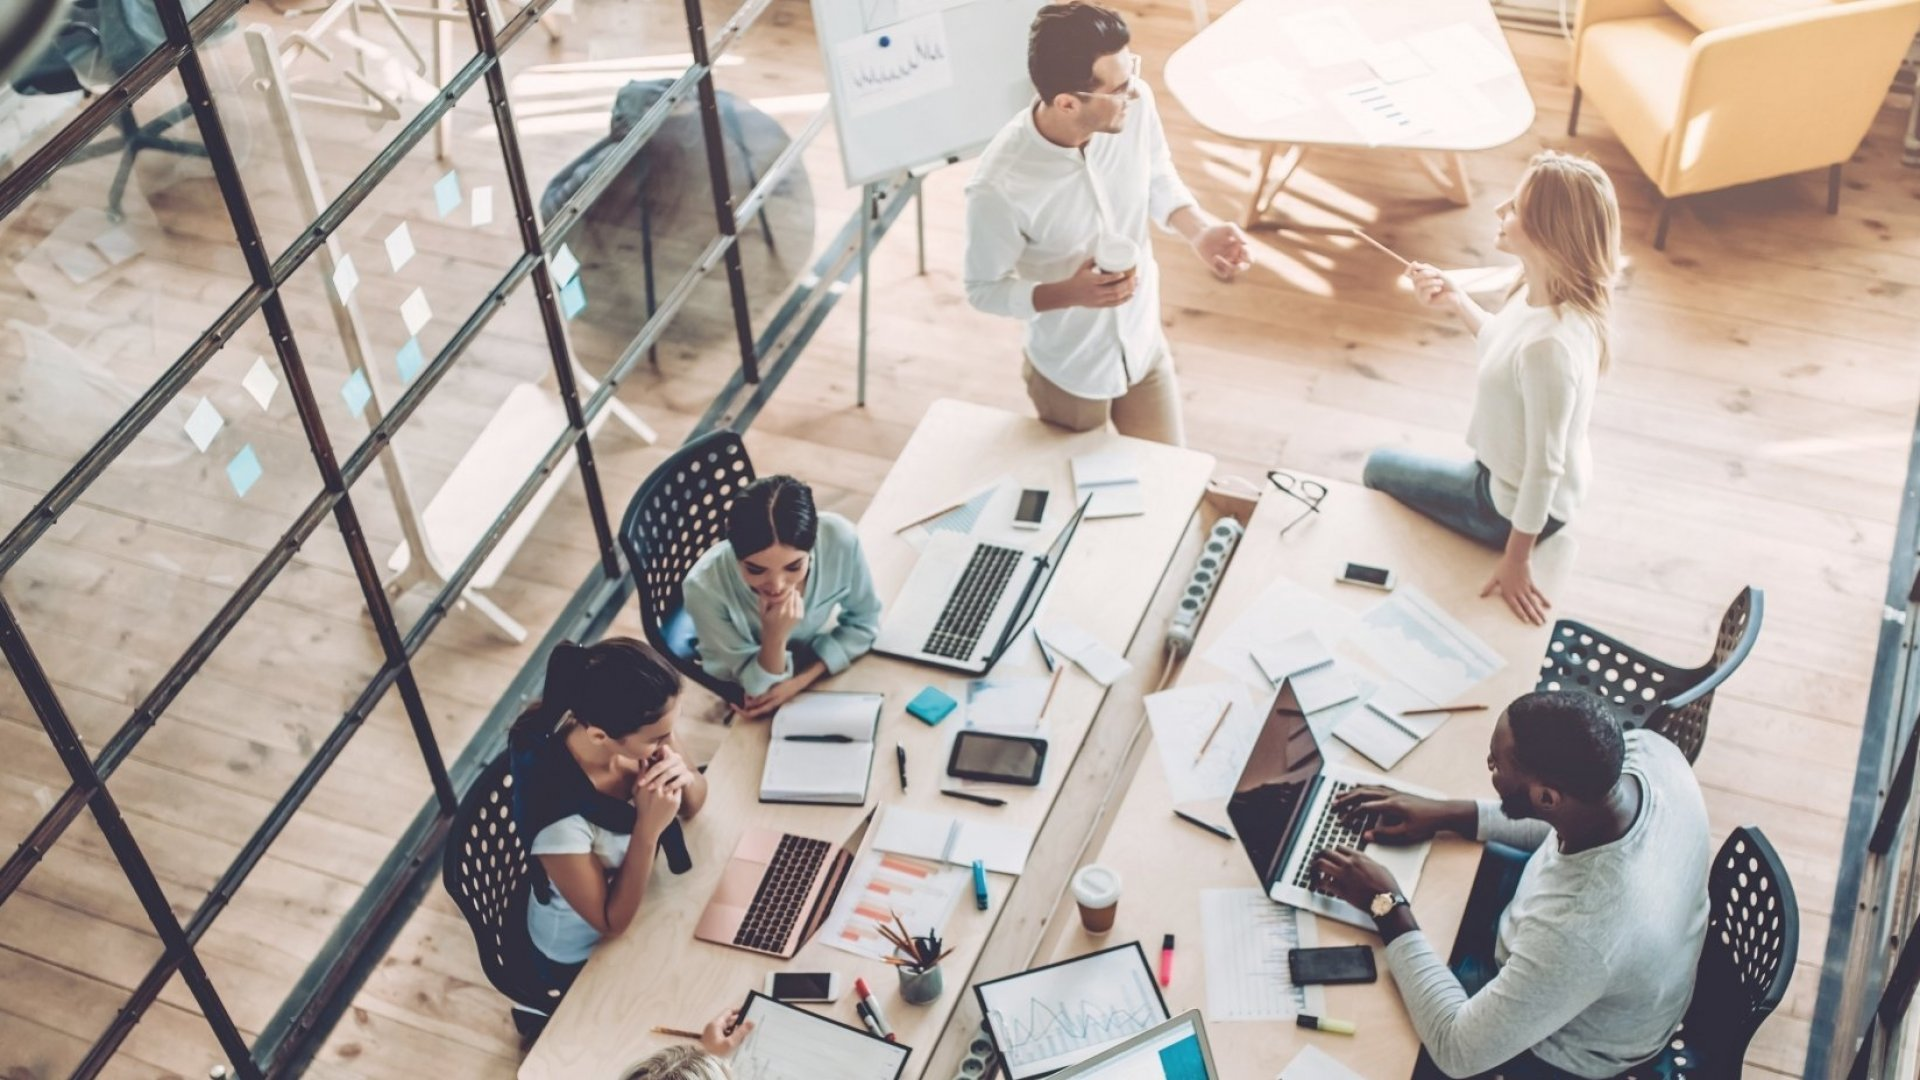 4 Things Successful Companies Do to Inspire Great Teamwork